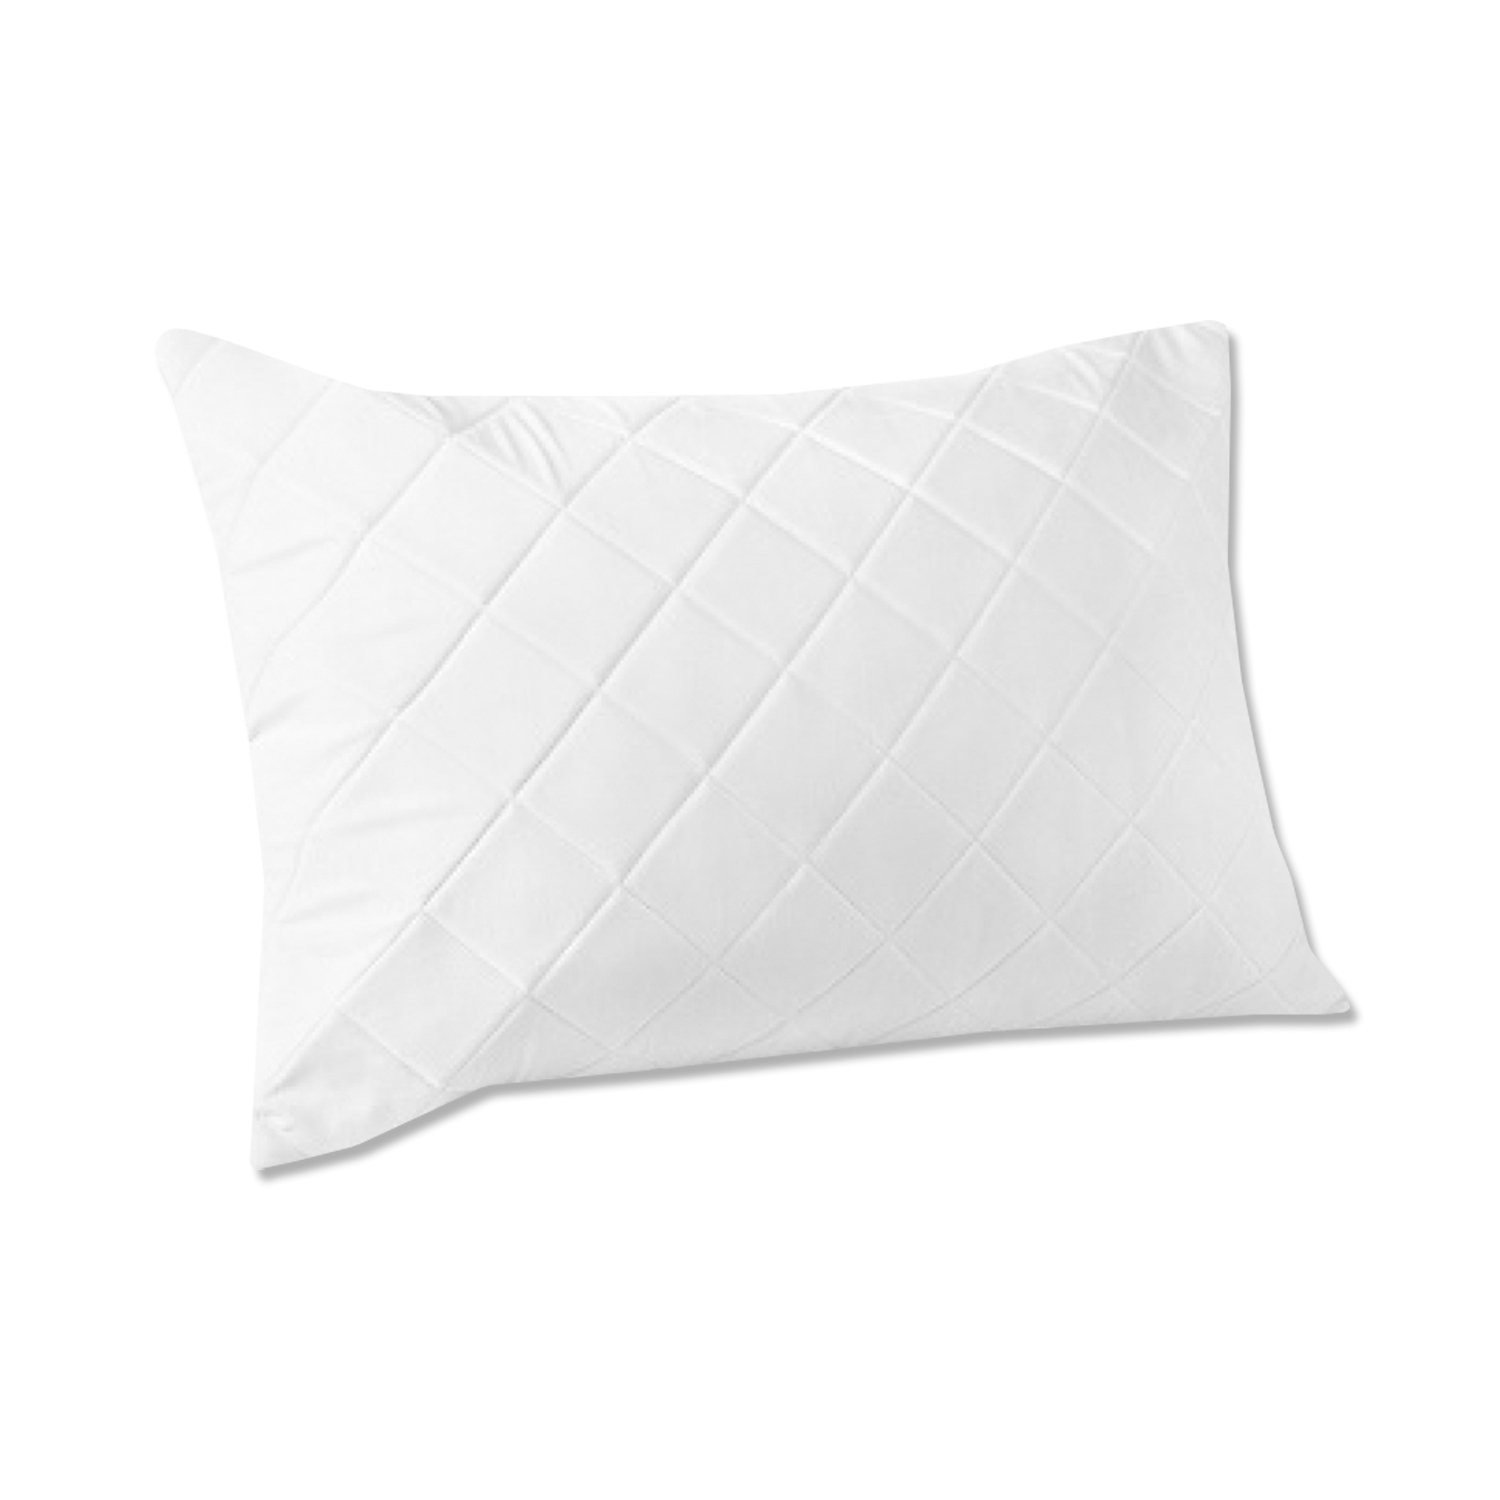 Levinsohn Memory Foam Quilted Pillow Protector – Cool Soft Cover Will Enhance Your Sleep – Standard/Queen